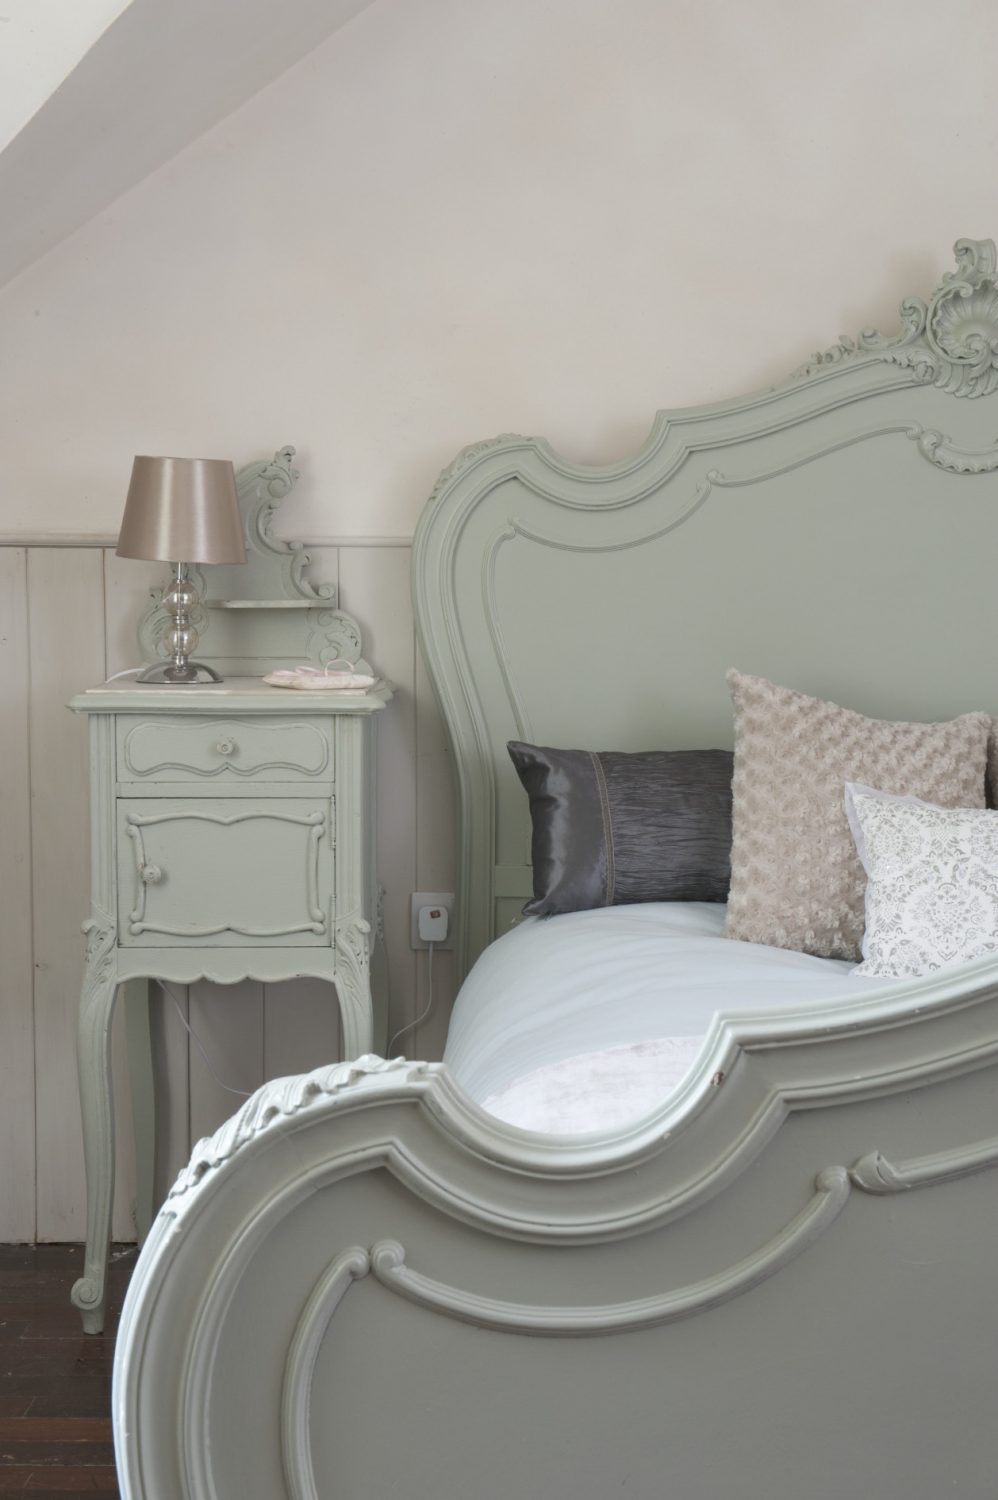 Cookie's well-ordered bedroom is a serene sanctuary of light grey and shell pink